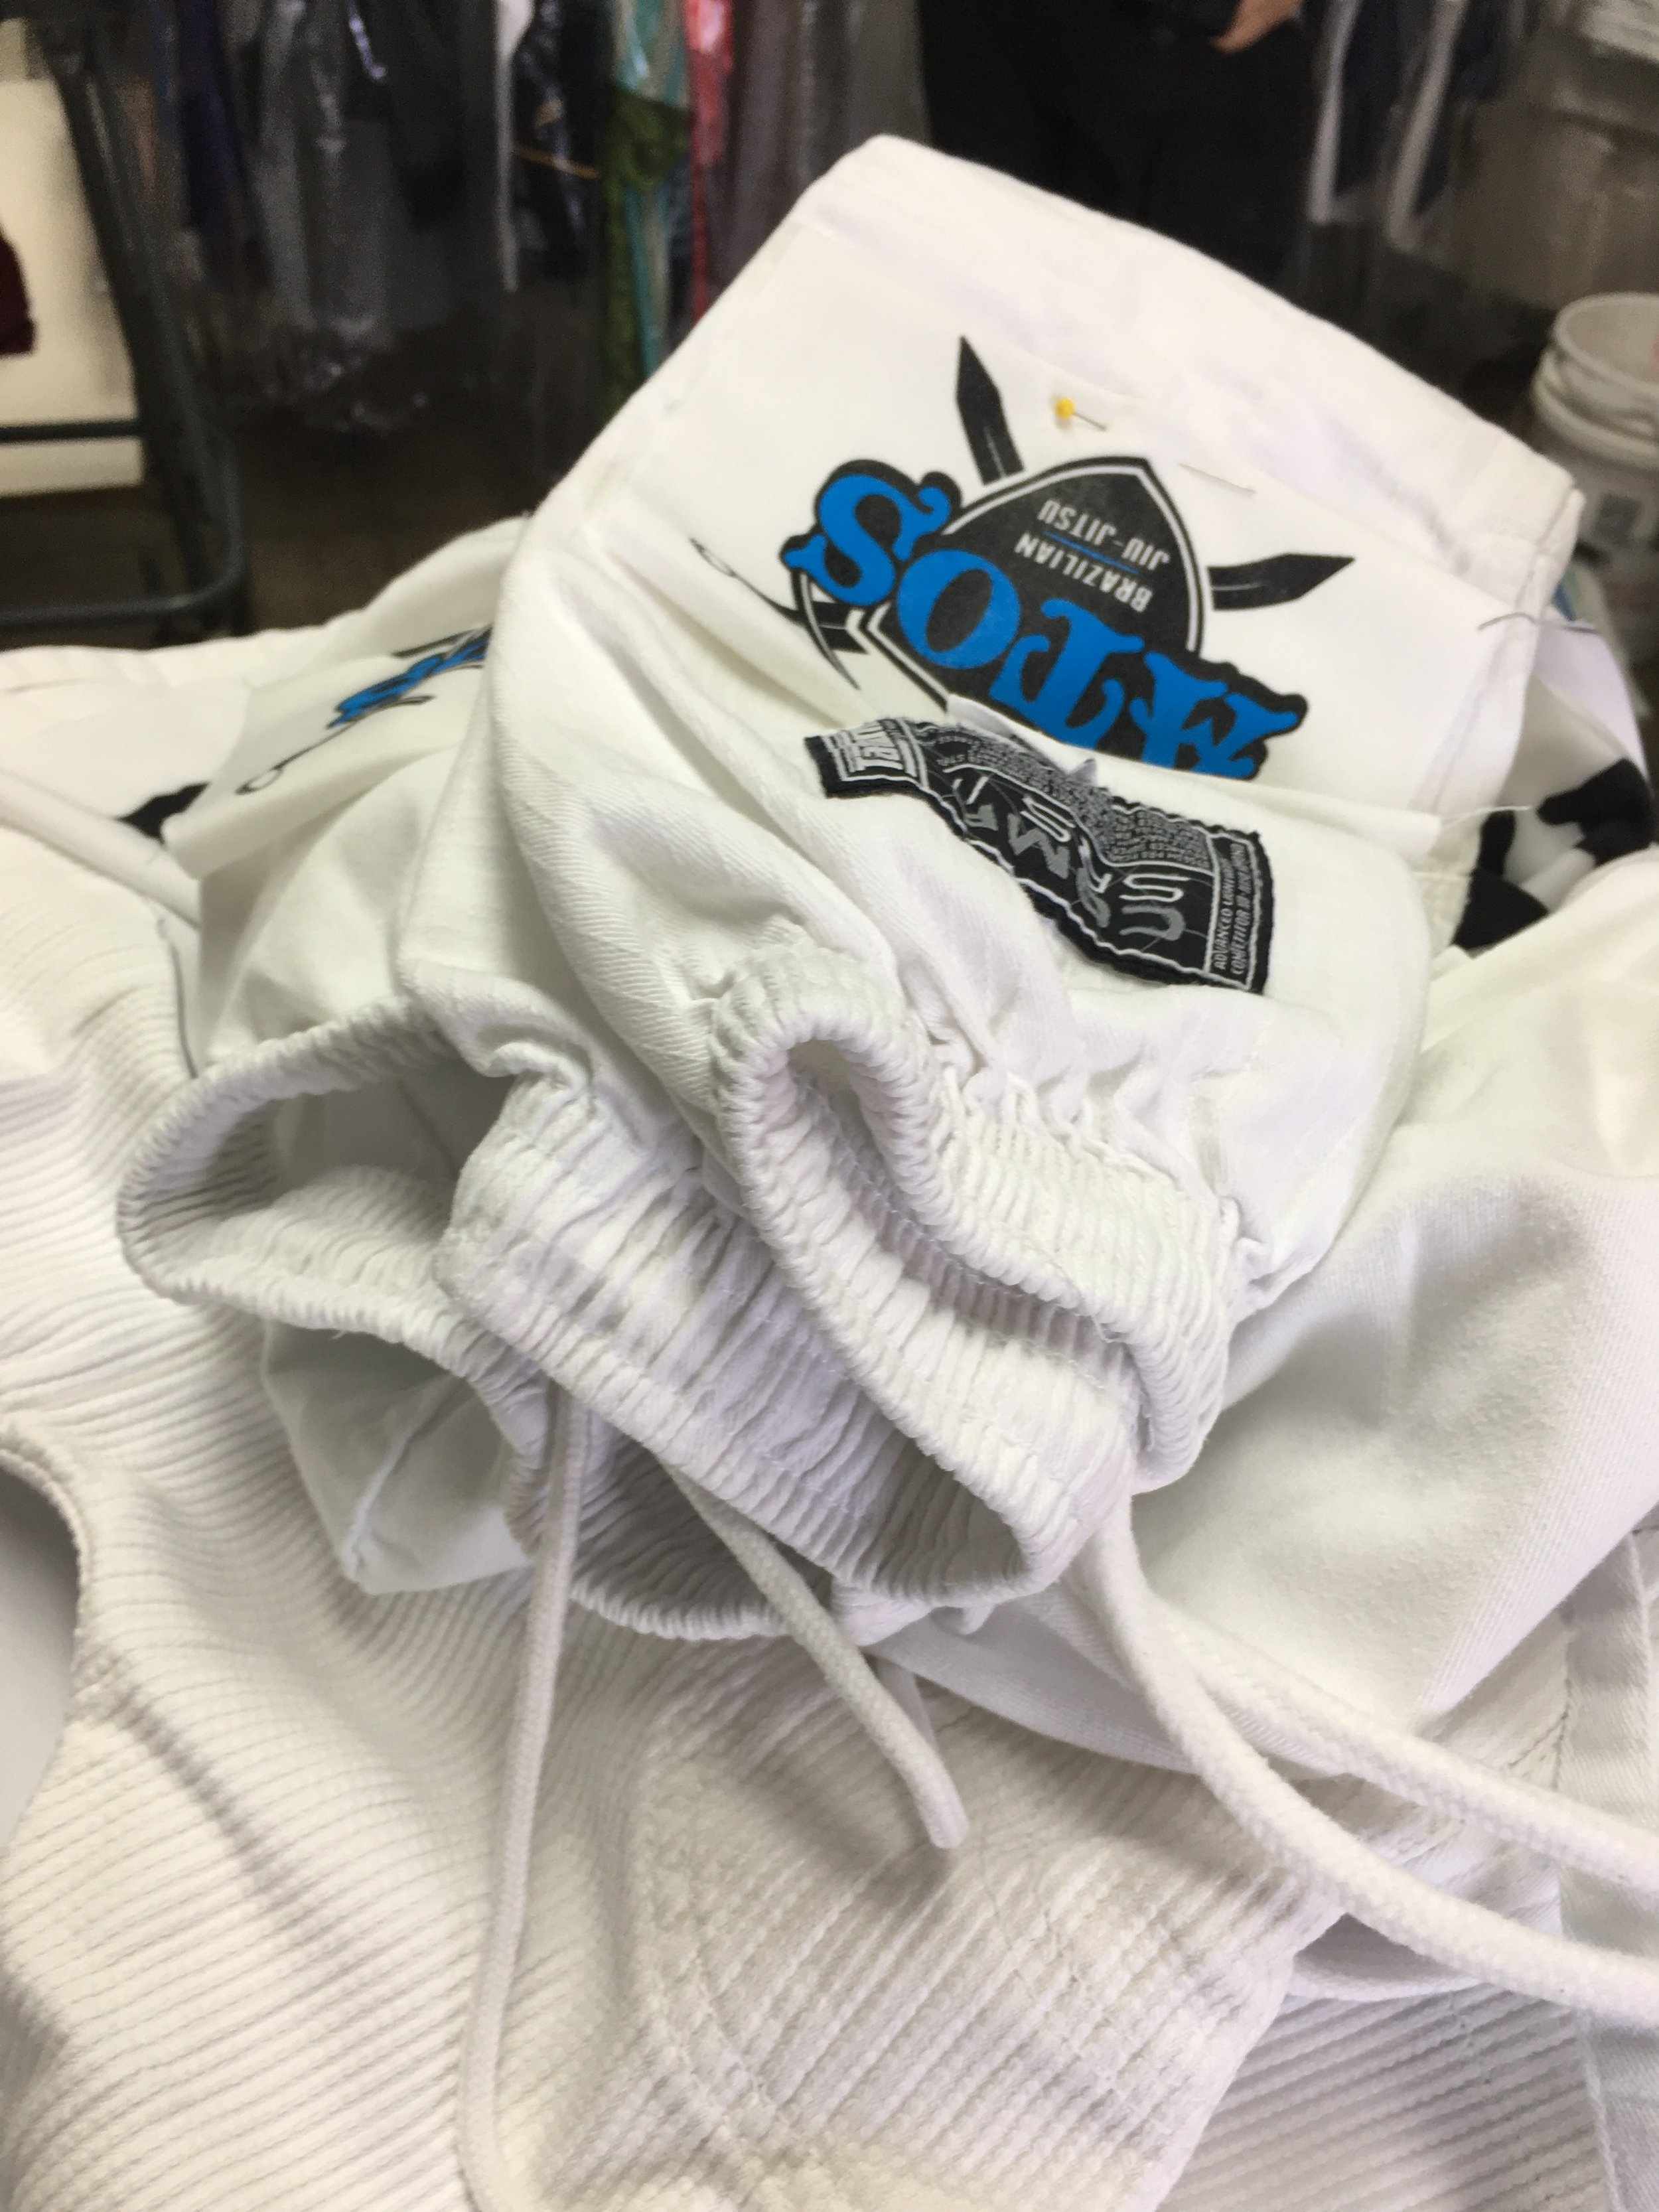 Getting the kids Gi's patched up. I appreciate all the customers and companies that are supportive. Trying to make sure to do the same and promote and support them too.